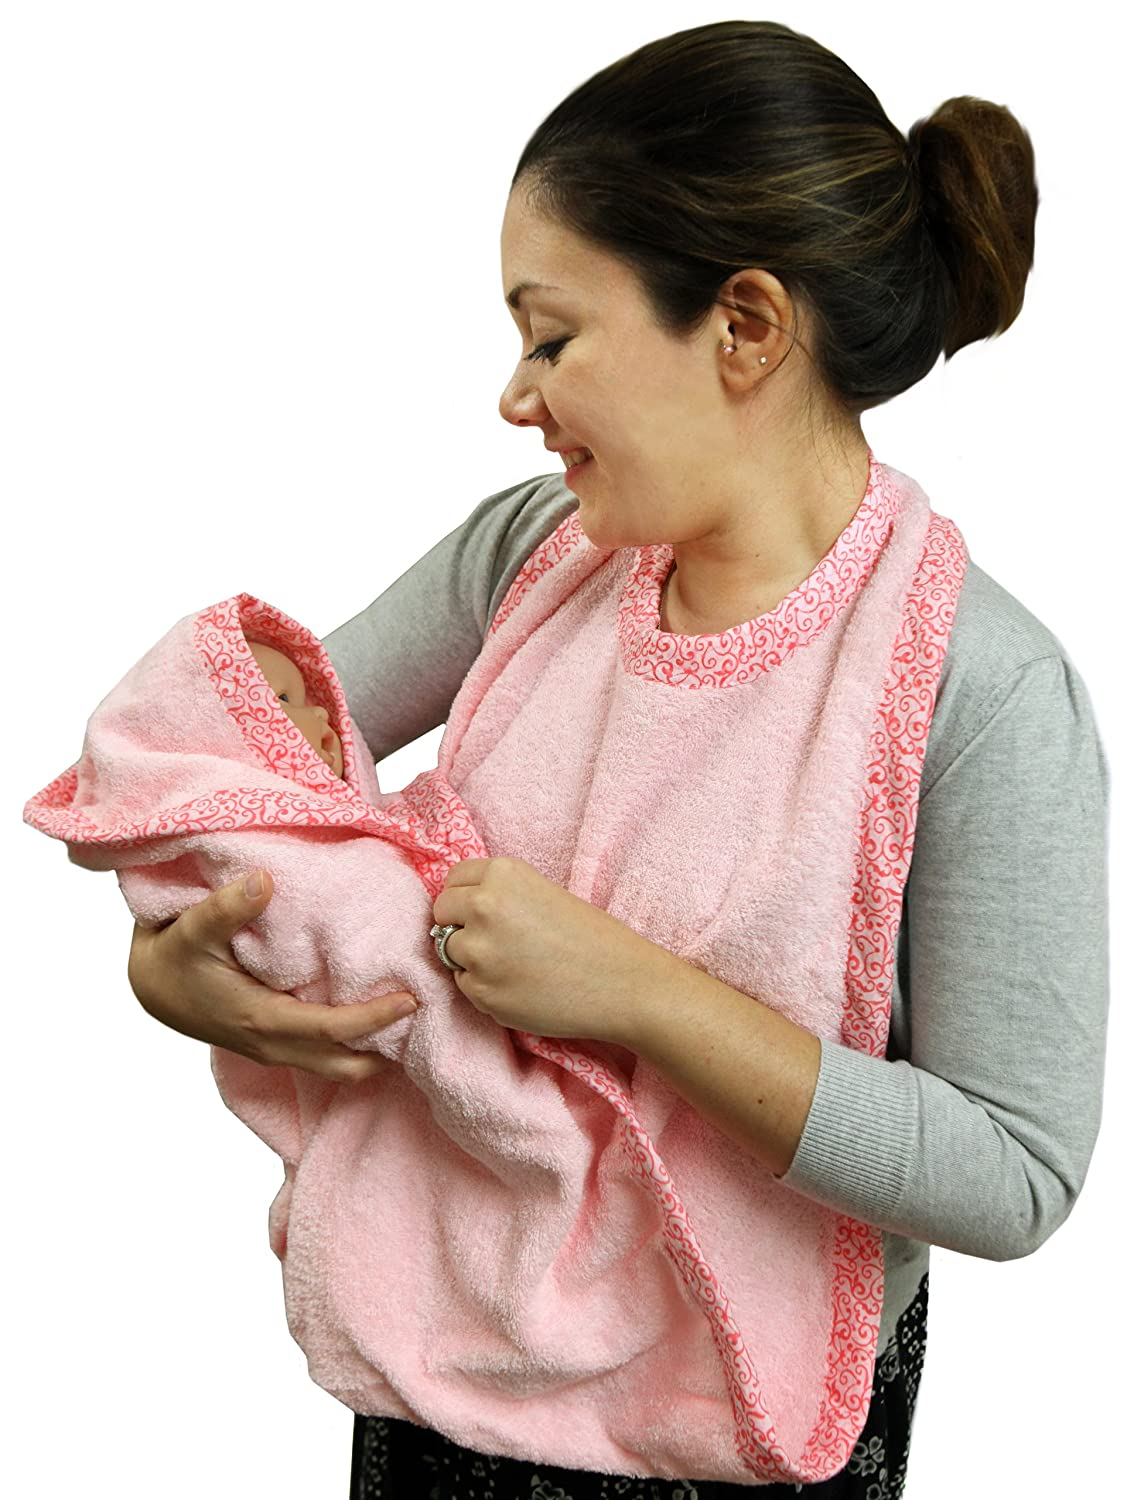 Pink Hooded Towel - Extra Large Hand Free Absorbent76.2X134.62 cm - by Frenchie Mini Couture